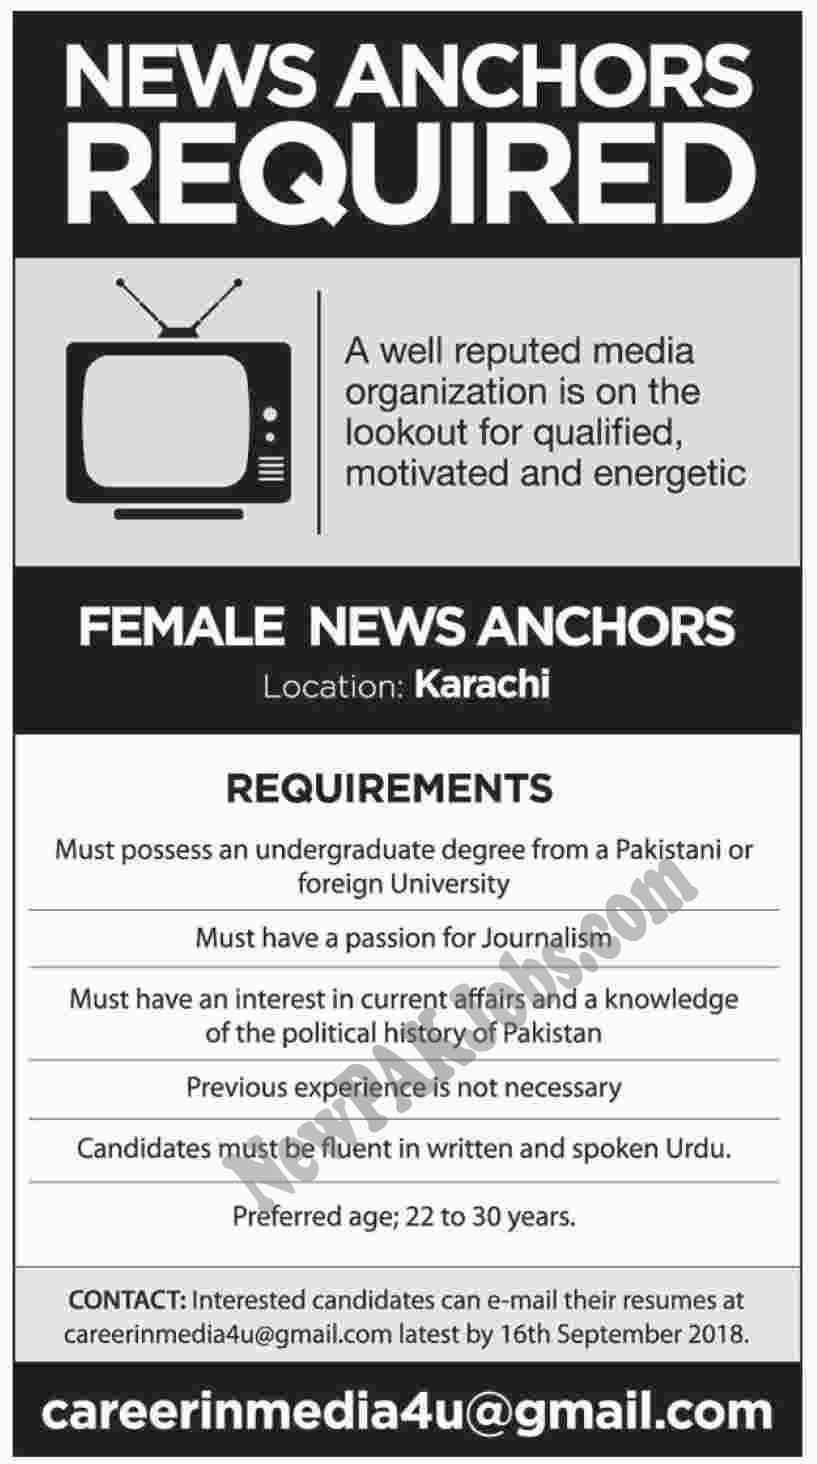 Female News Anchors Jobs in Karachi September 2018 - Under Graduate